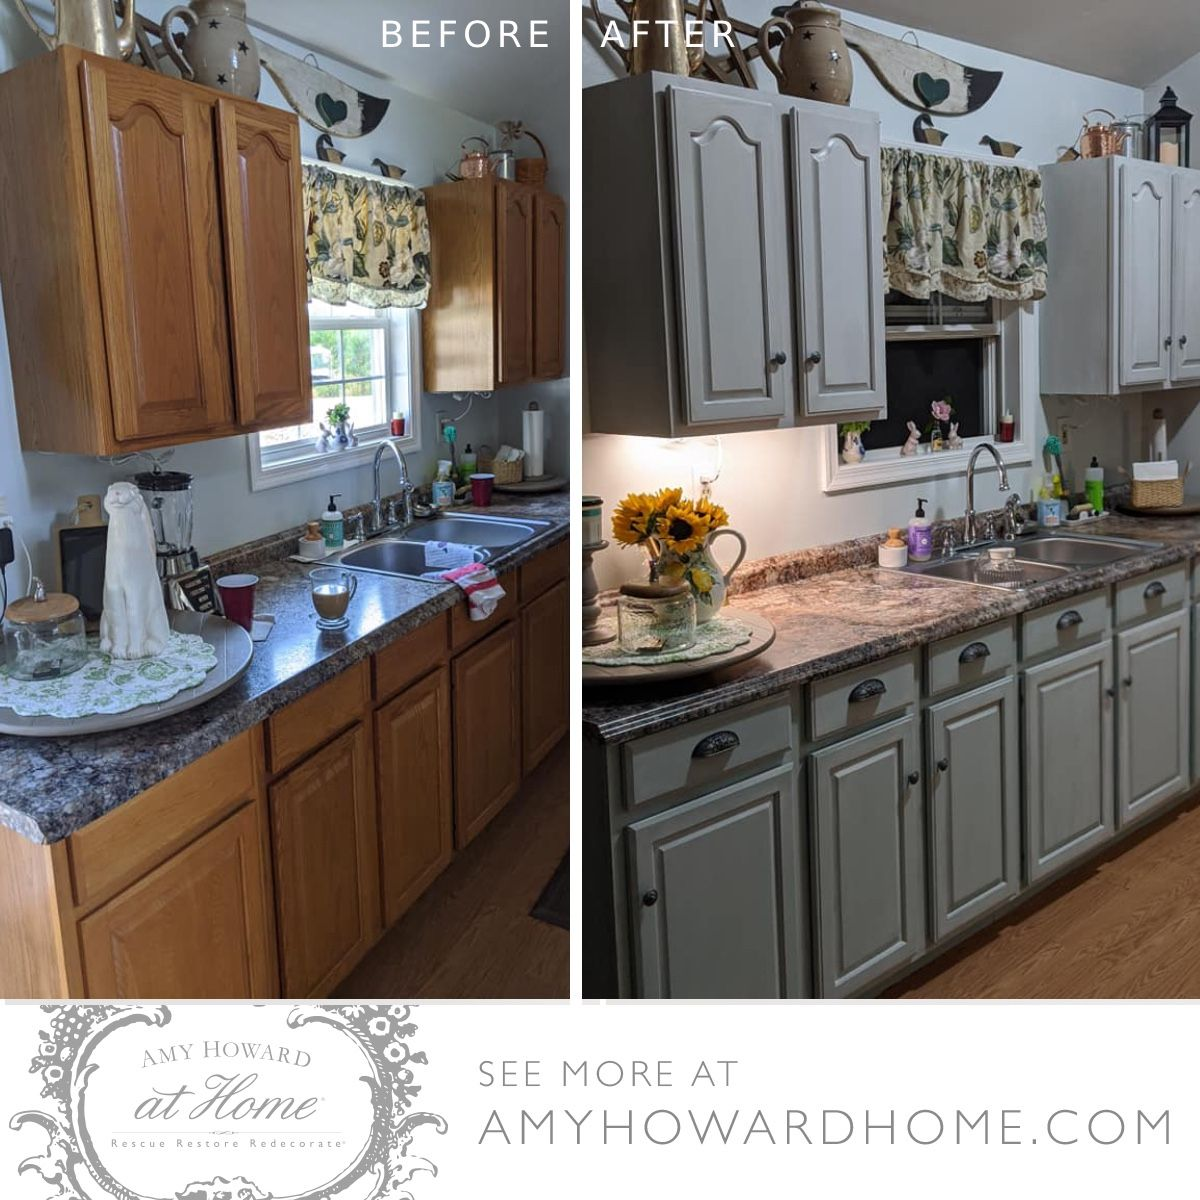 Before After Kitchen Makeover In 2020 Kitchen Makeover Refinishing Furniture Diy Before After Kitchen